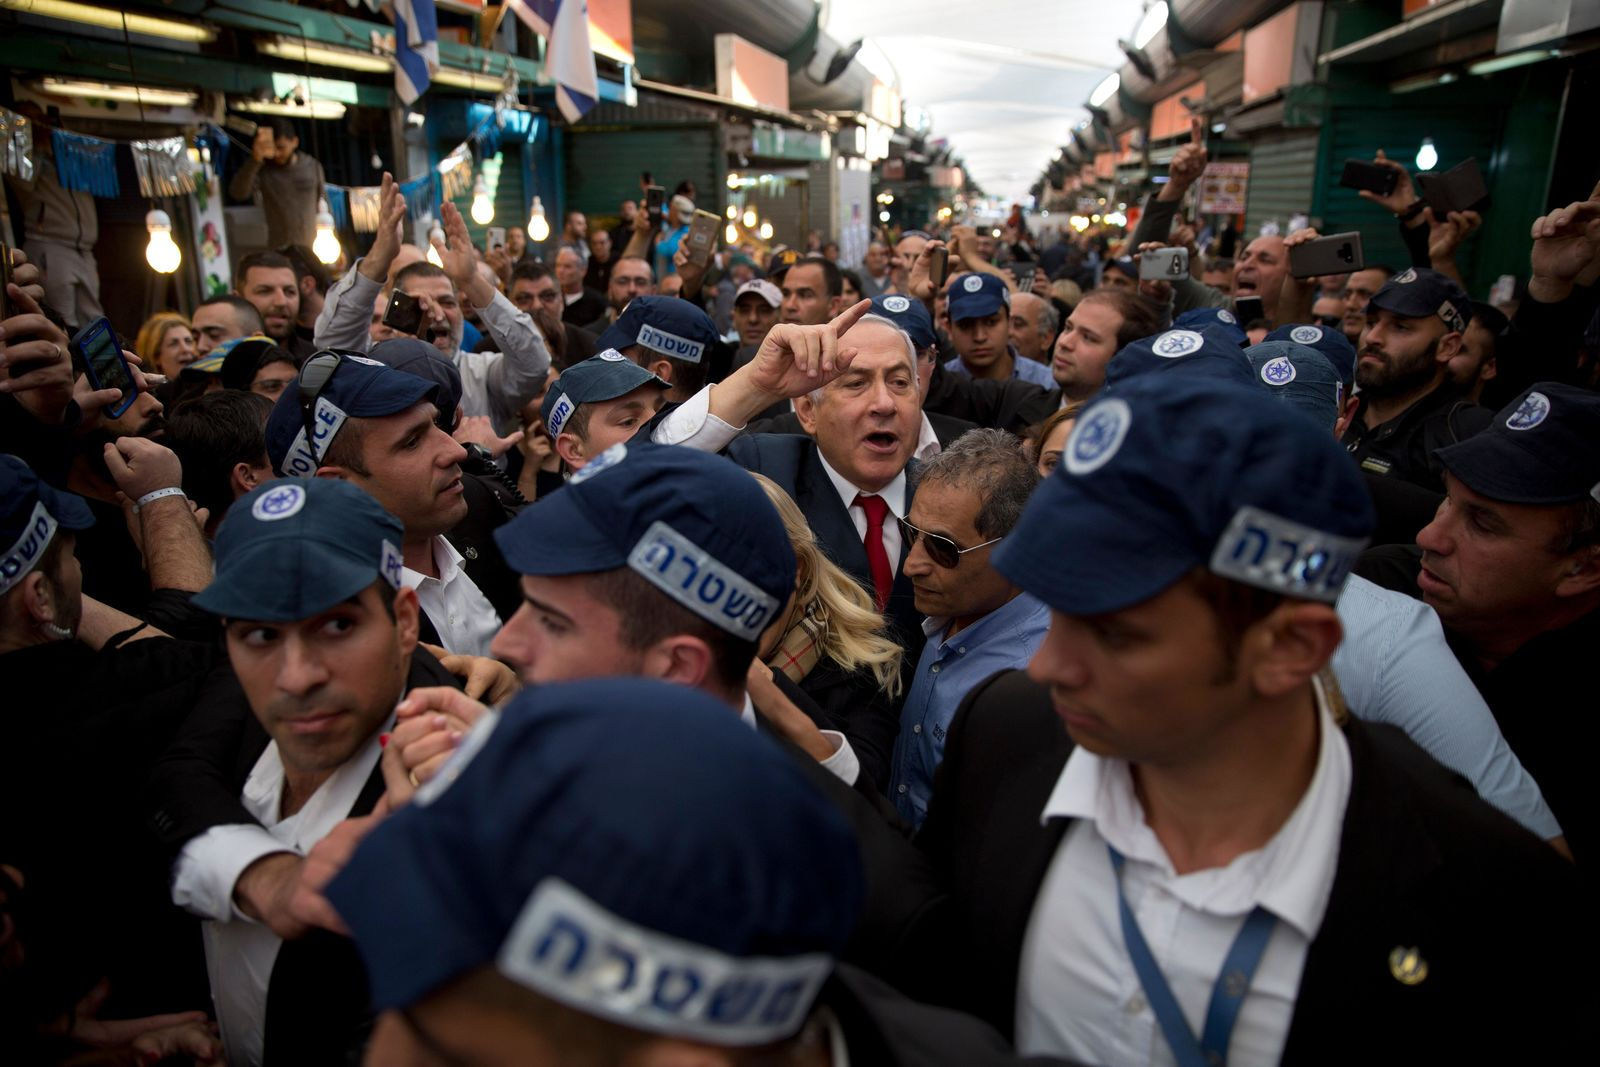 FILE - In this April 2, 2019 file photo, Israeli Prime Minister Benjamin Netanyahu, head of the Likud party, center, is escorted by security guards during a visit to the Ha'tikva market in Tel Aviv, Israel. (AP Photo/Oded Balilty, File)